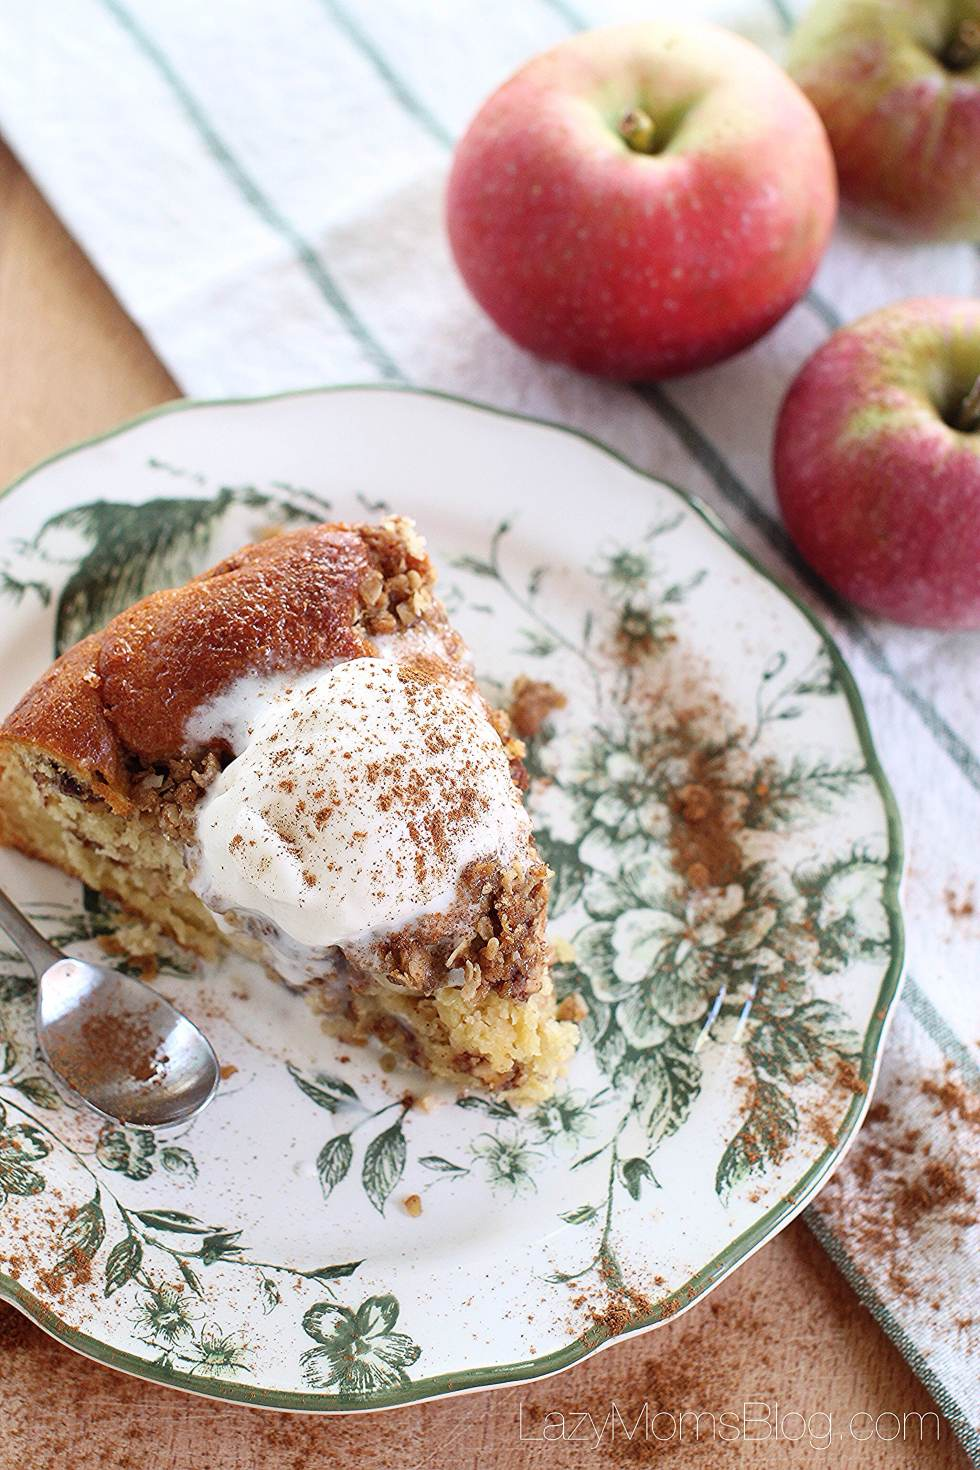 Apple crumble coffee cake, amazing dessert that you need to try this year! #applecake #fall #dessert